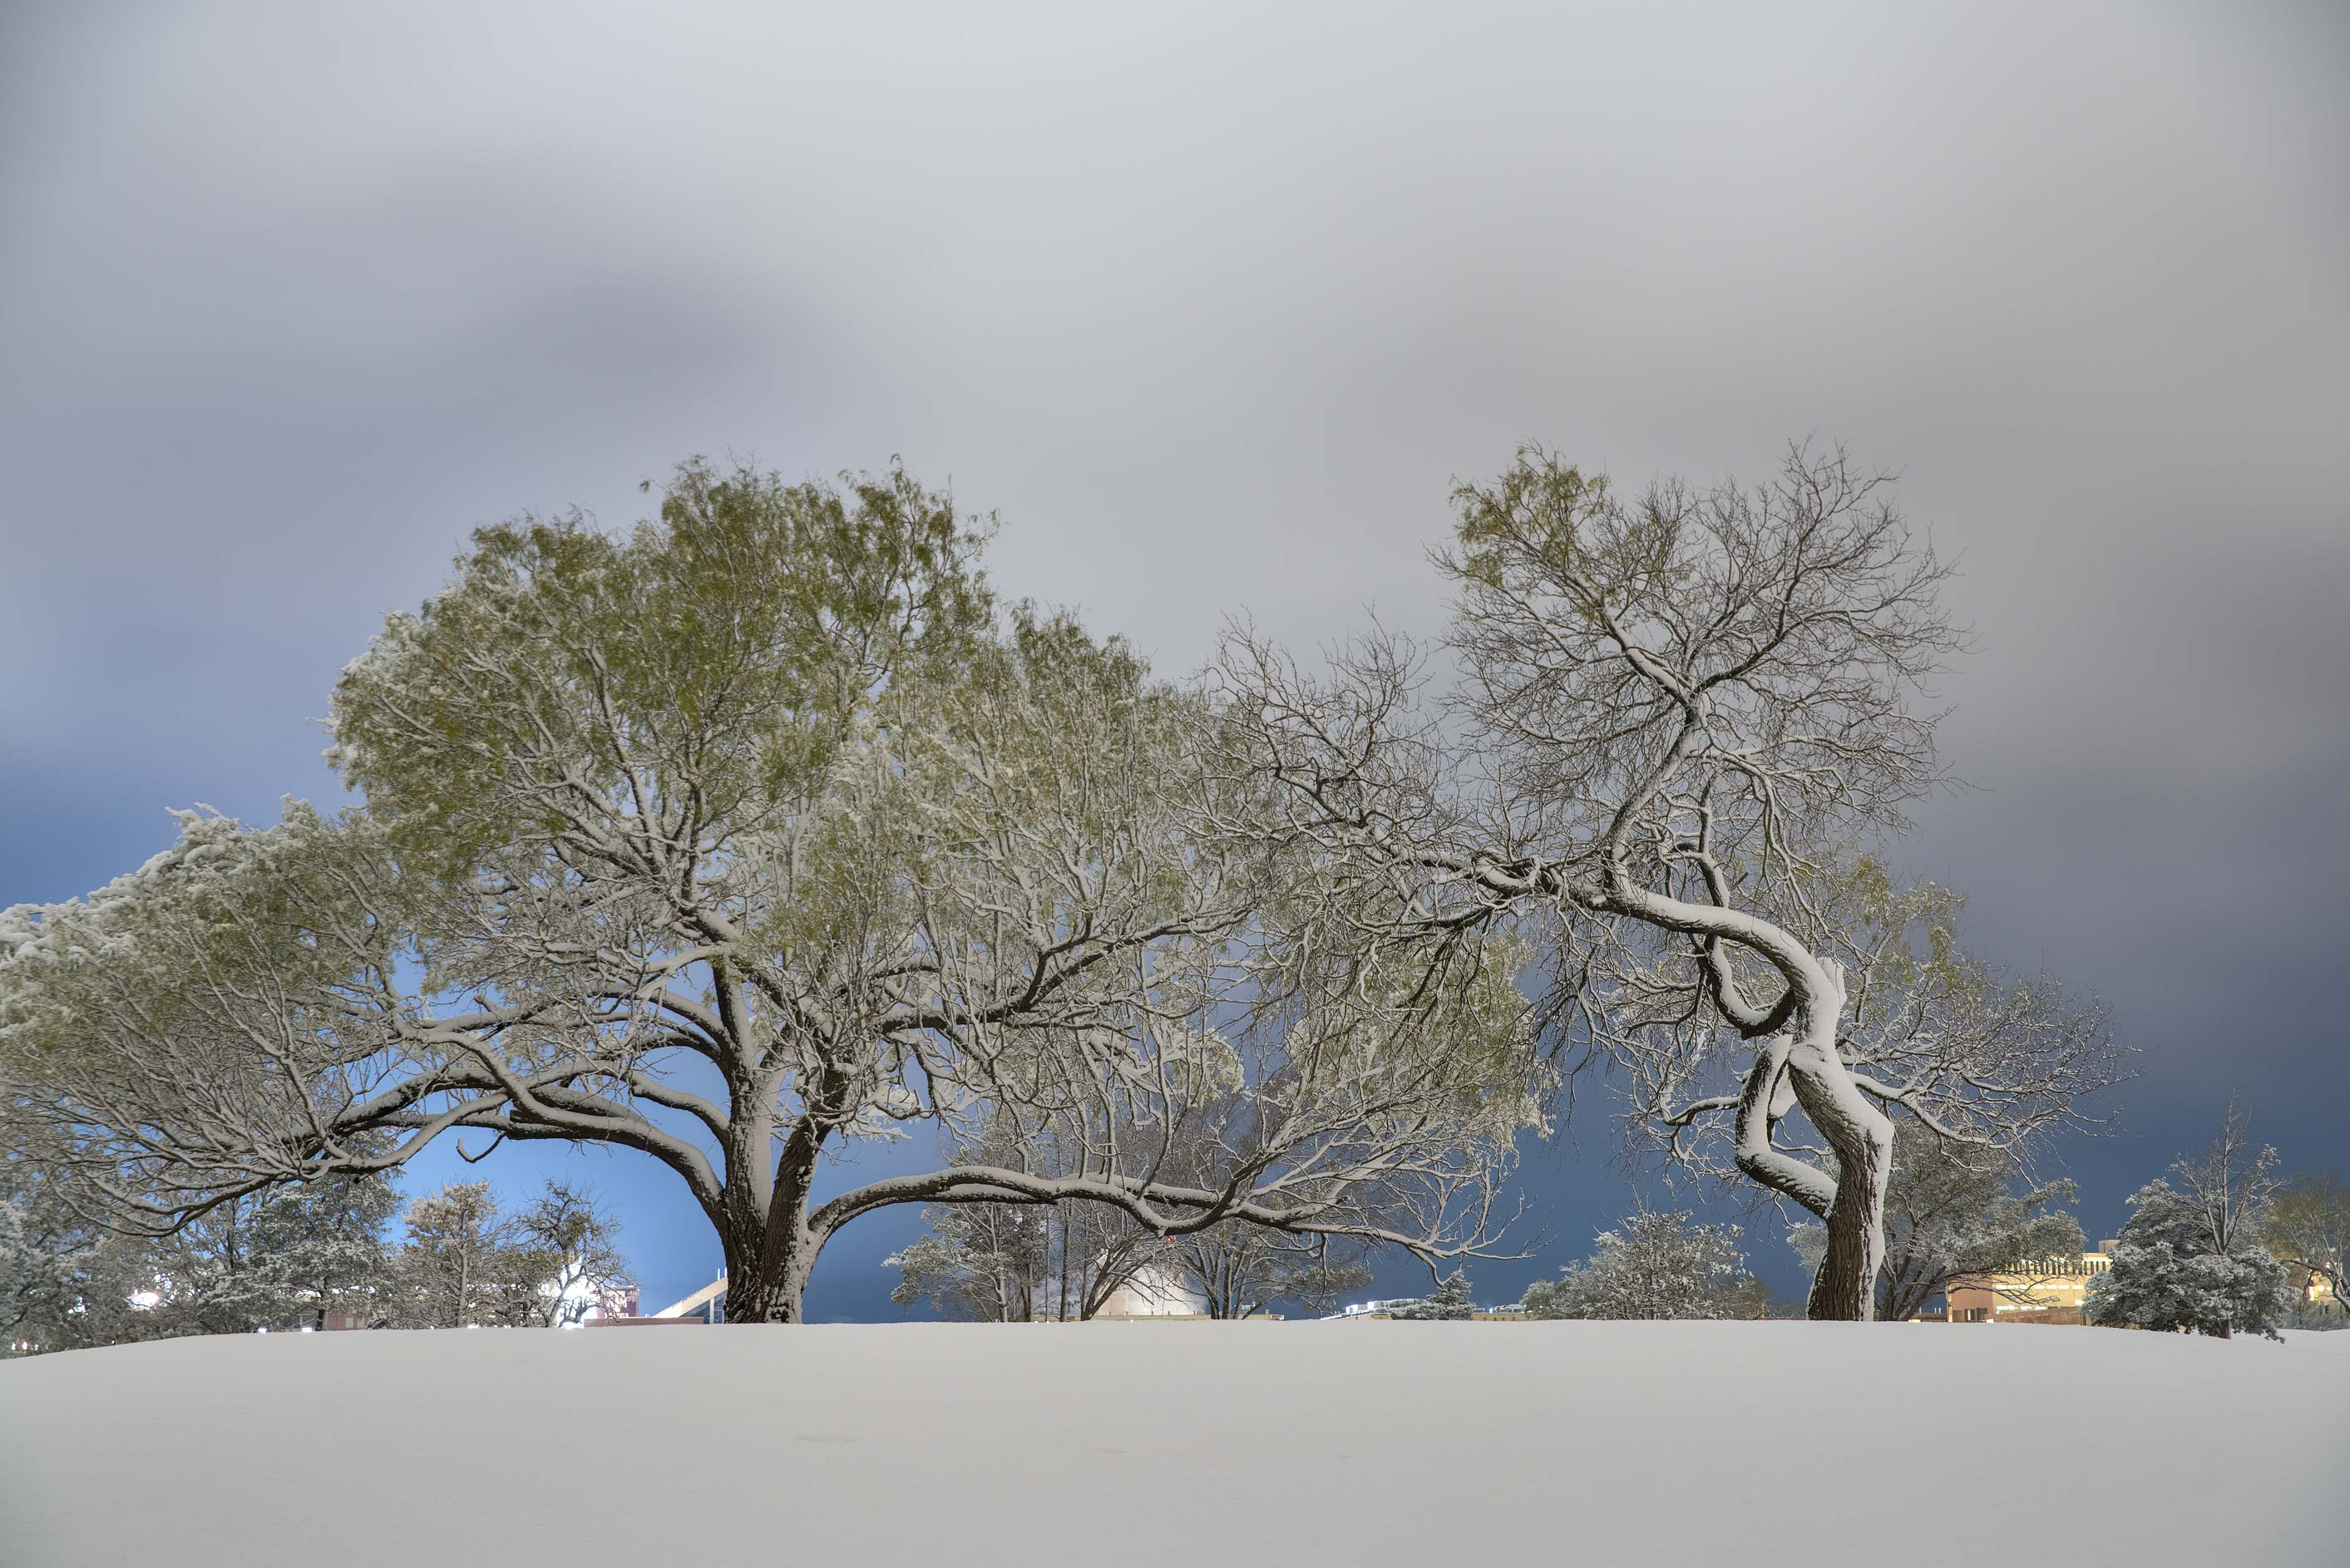 Trees after a snowfall on the university golf course. College Station, Texas